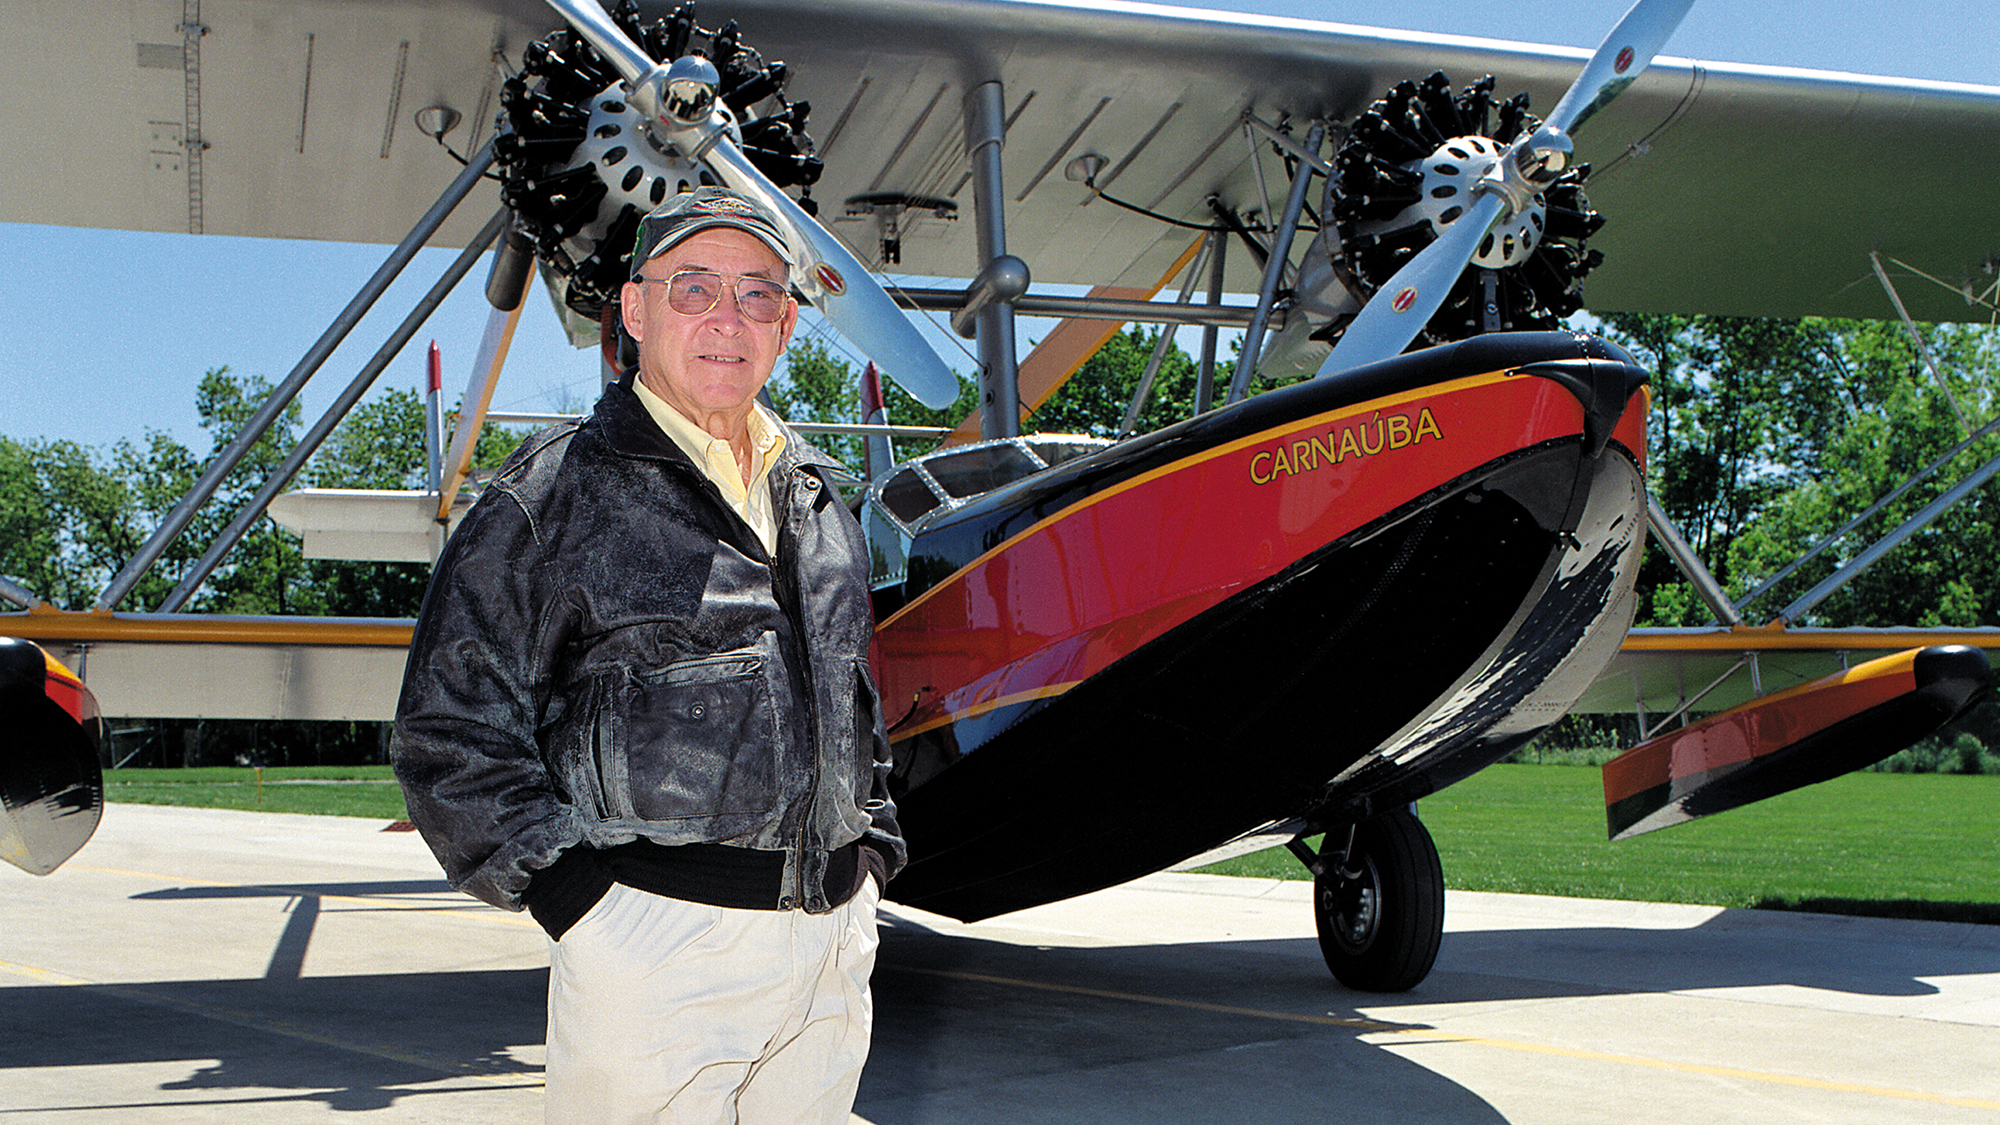 Sam Johnson with Carnauba Amphibian Plane